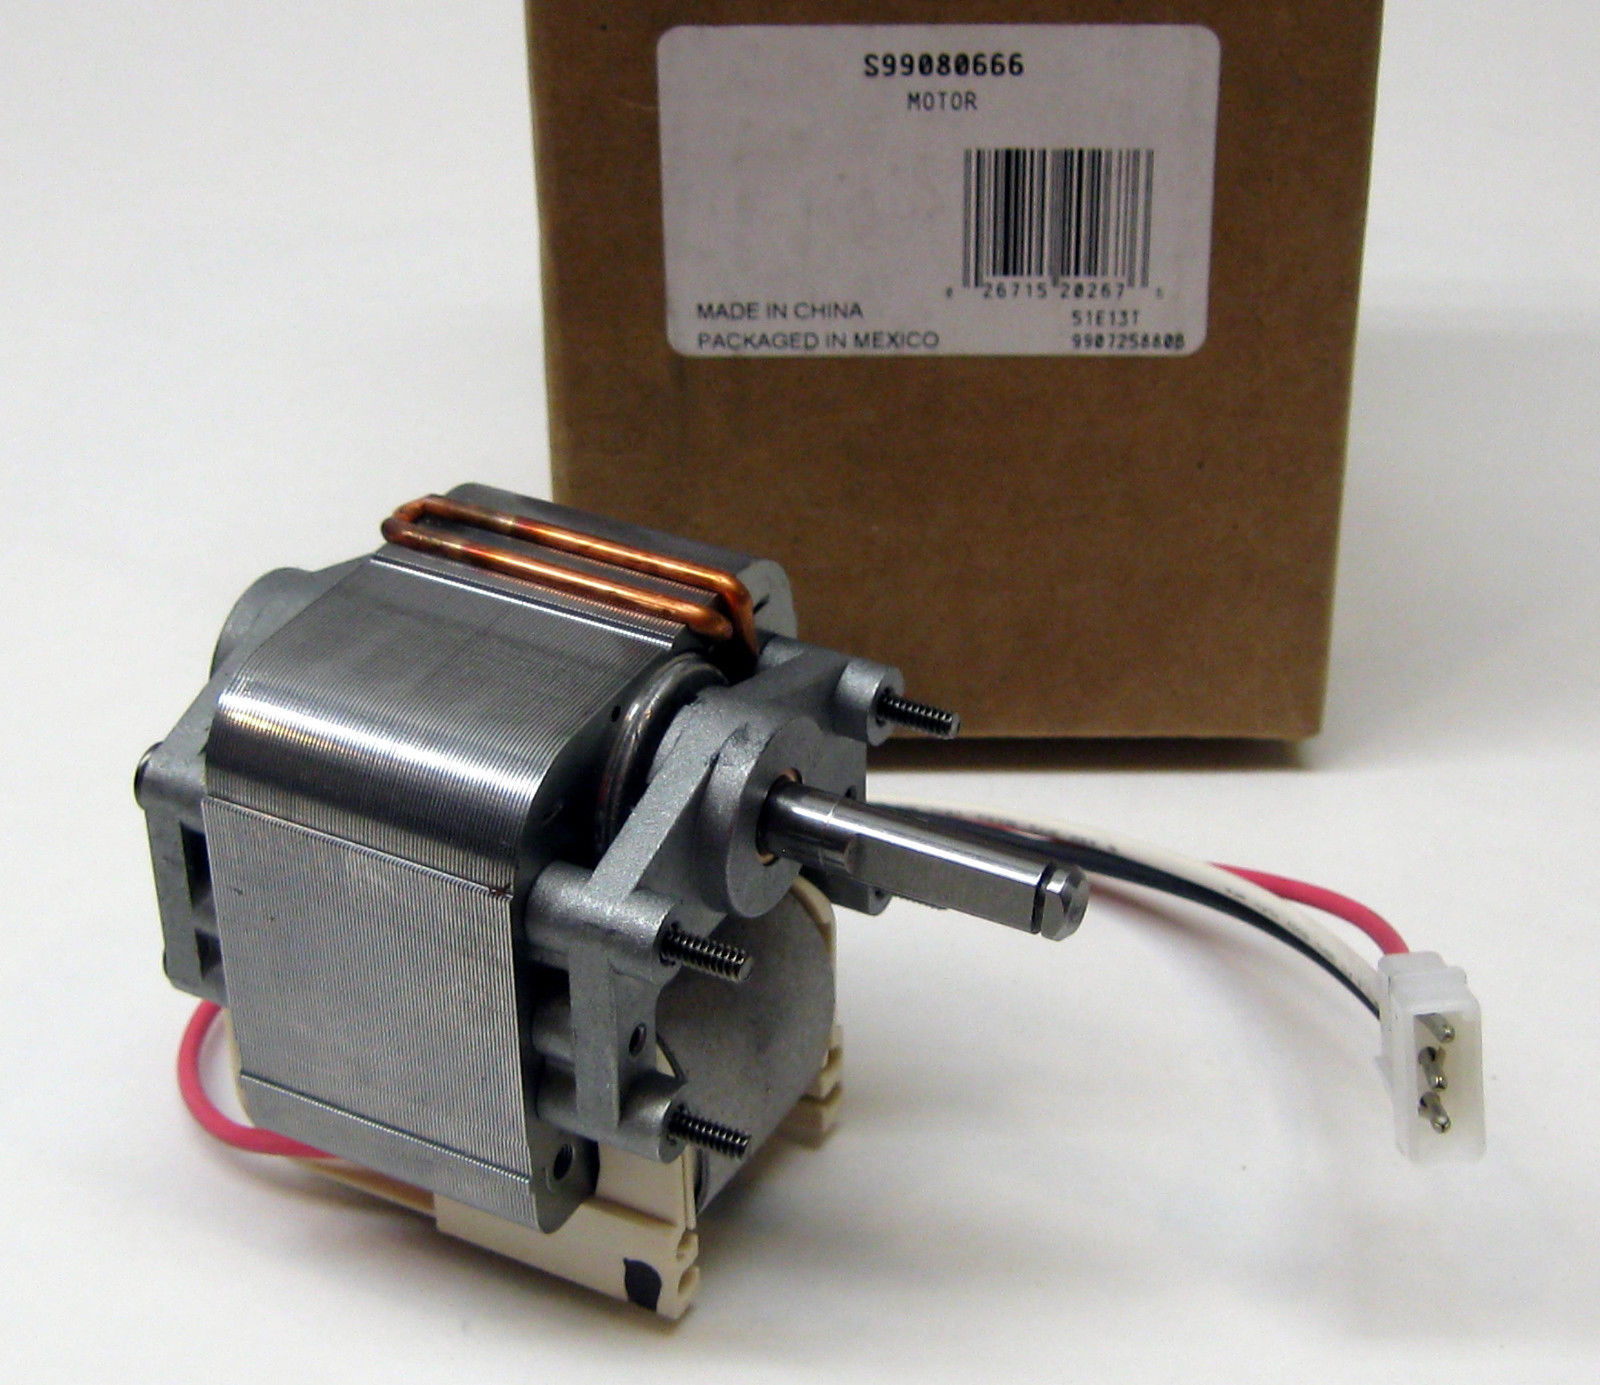 Image is loading S99080666 Broan Nutone Vent Fan Motor JESP 61K38. S99080666 Broan Nutone Vent Fan Motor JESP 61K38 99080666 120